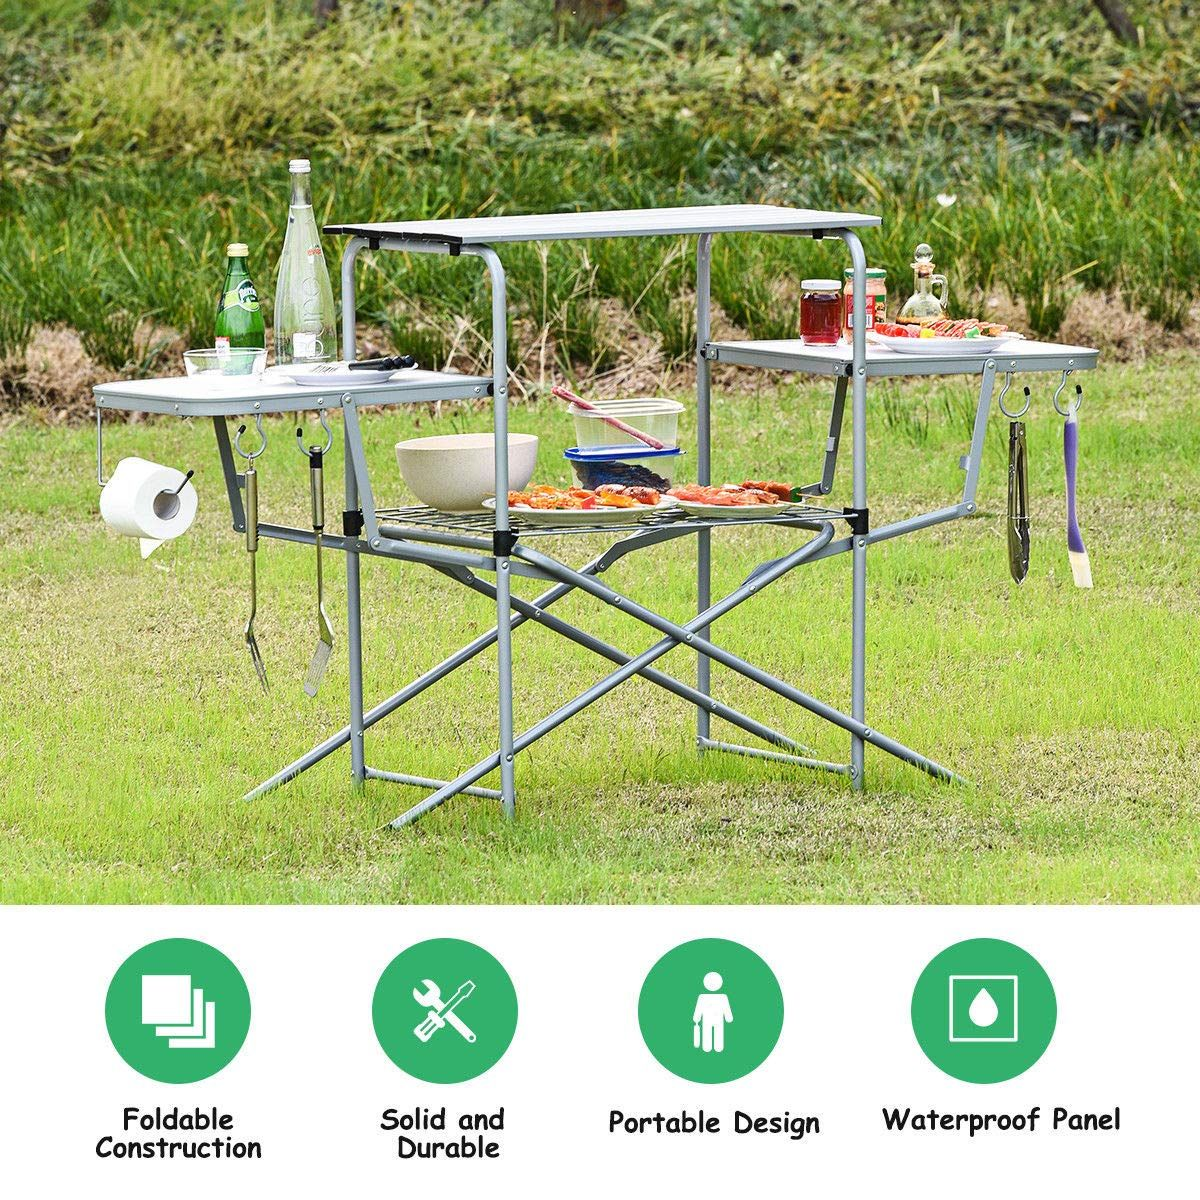 Giantex Aluminum Folding Grill Table With Hooks And Storage Lower Shelf Easy To Carry With Carrying Bag Great For Bbq Pi Bbq Table Camping Table Folding Bbq